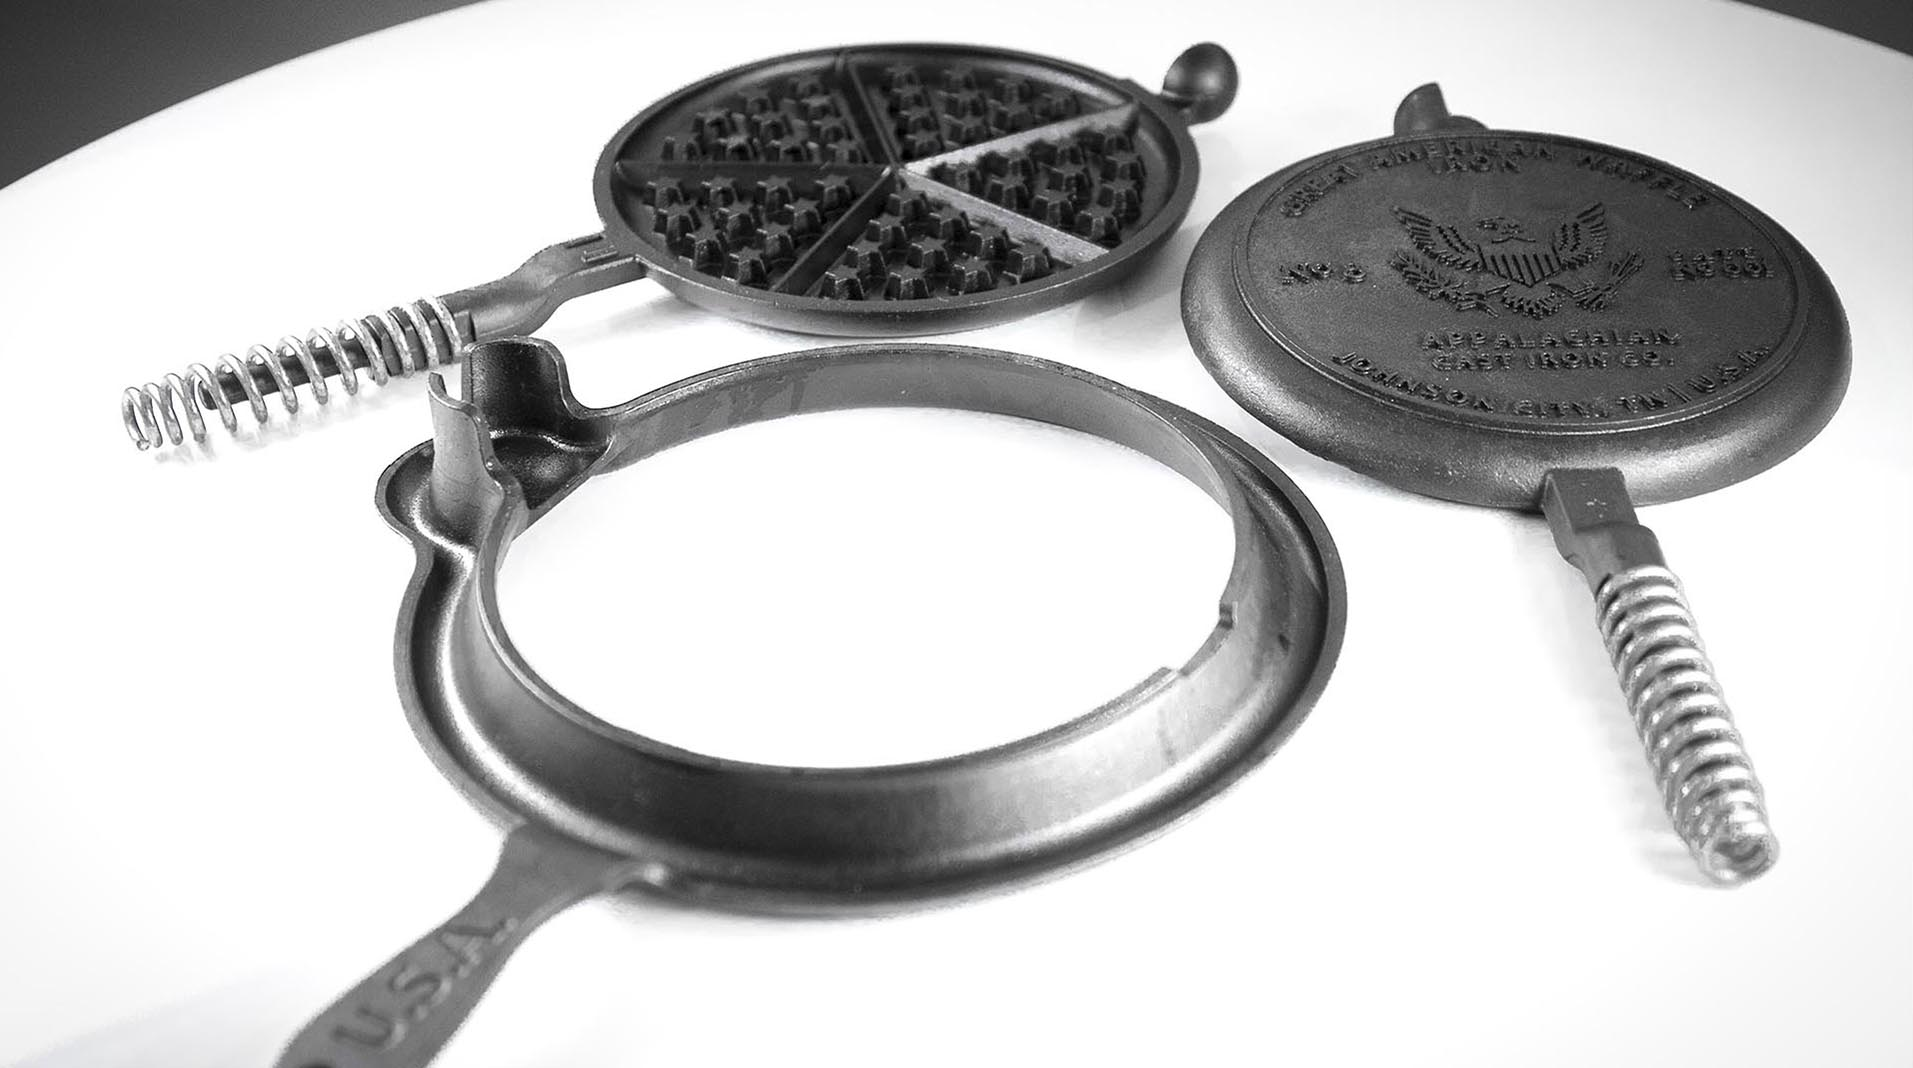 Great American Waffle Iron disassembled